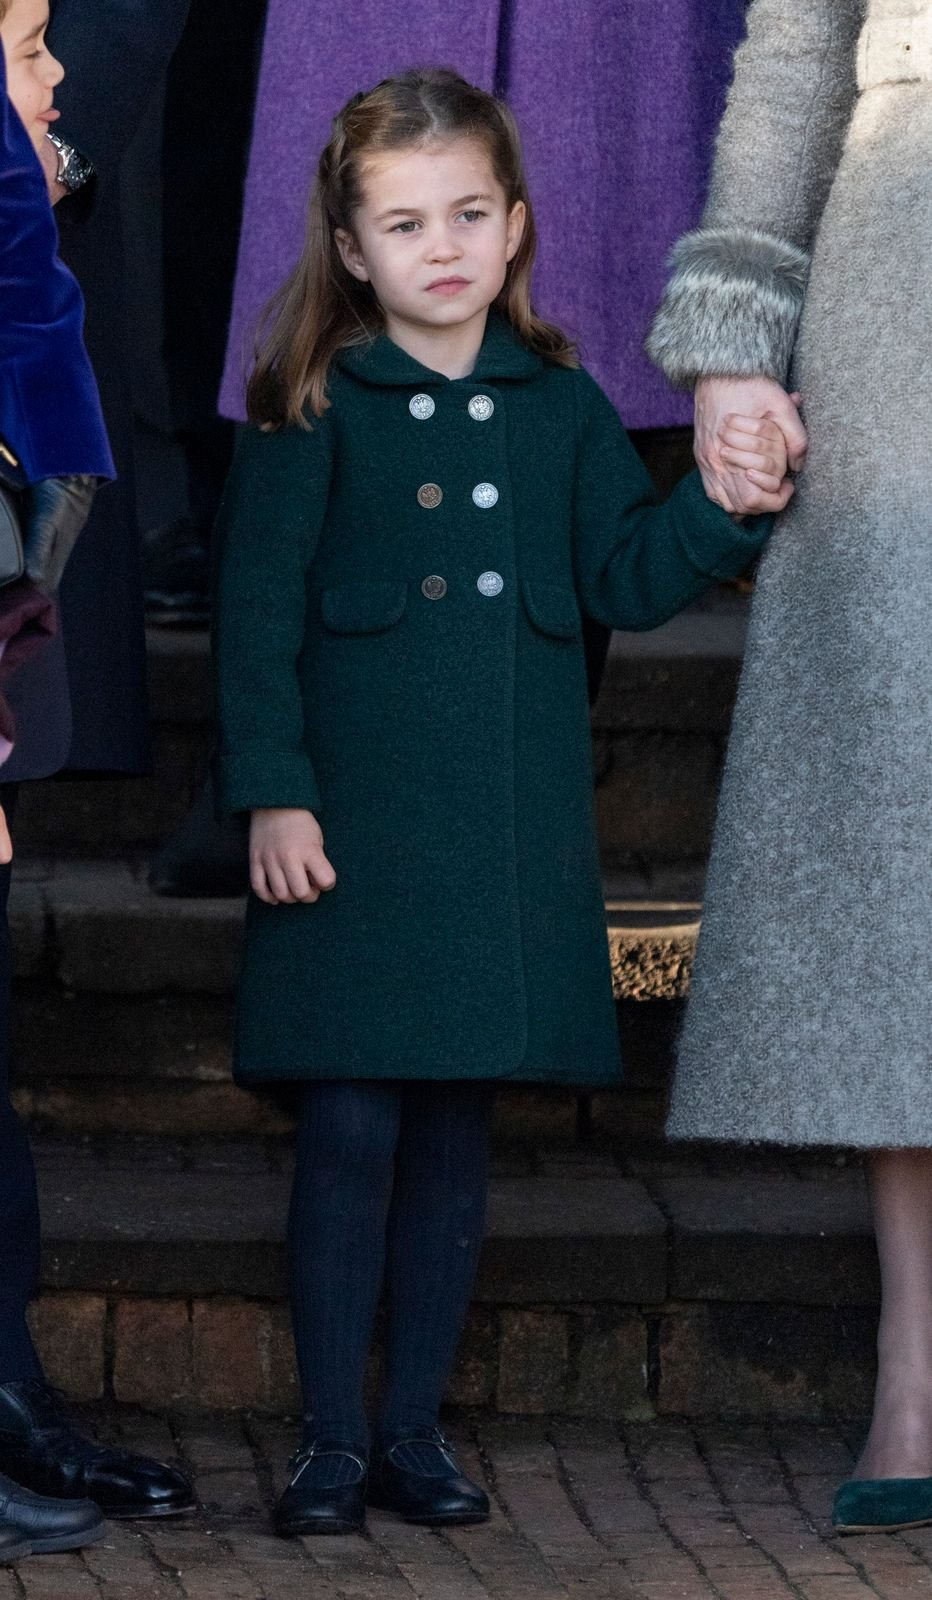 Princess Charlotte at the Christmas Day Church service at Church of St Mary Magdalene on December 25, 2019, in King's Lynn, United Kingdom | Photo: UK Press Pool/UK Press/Getty Images